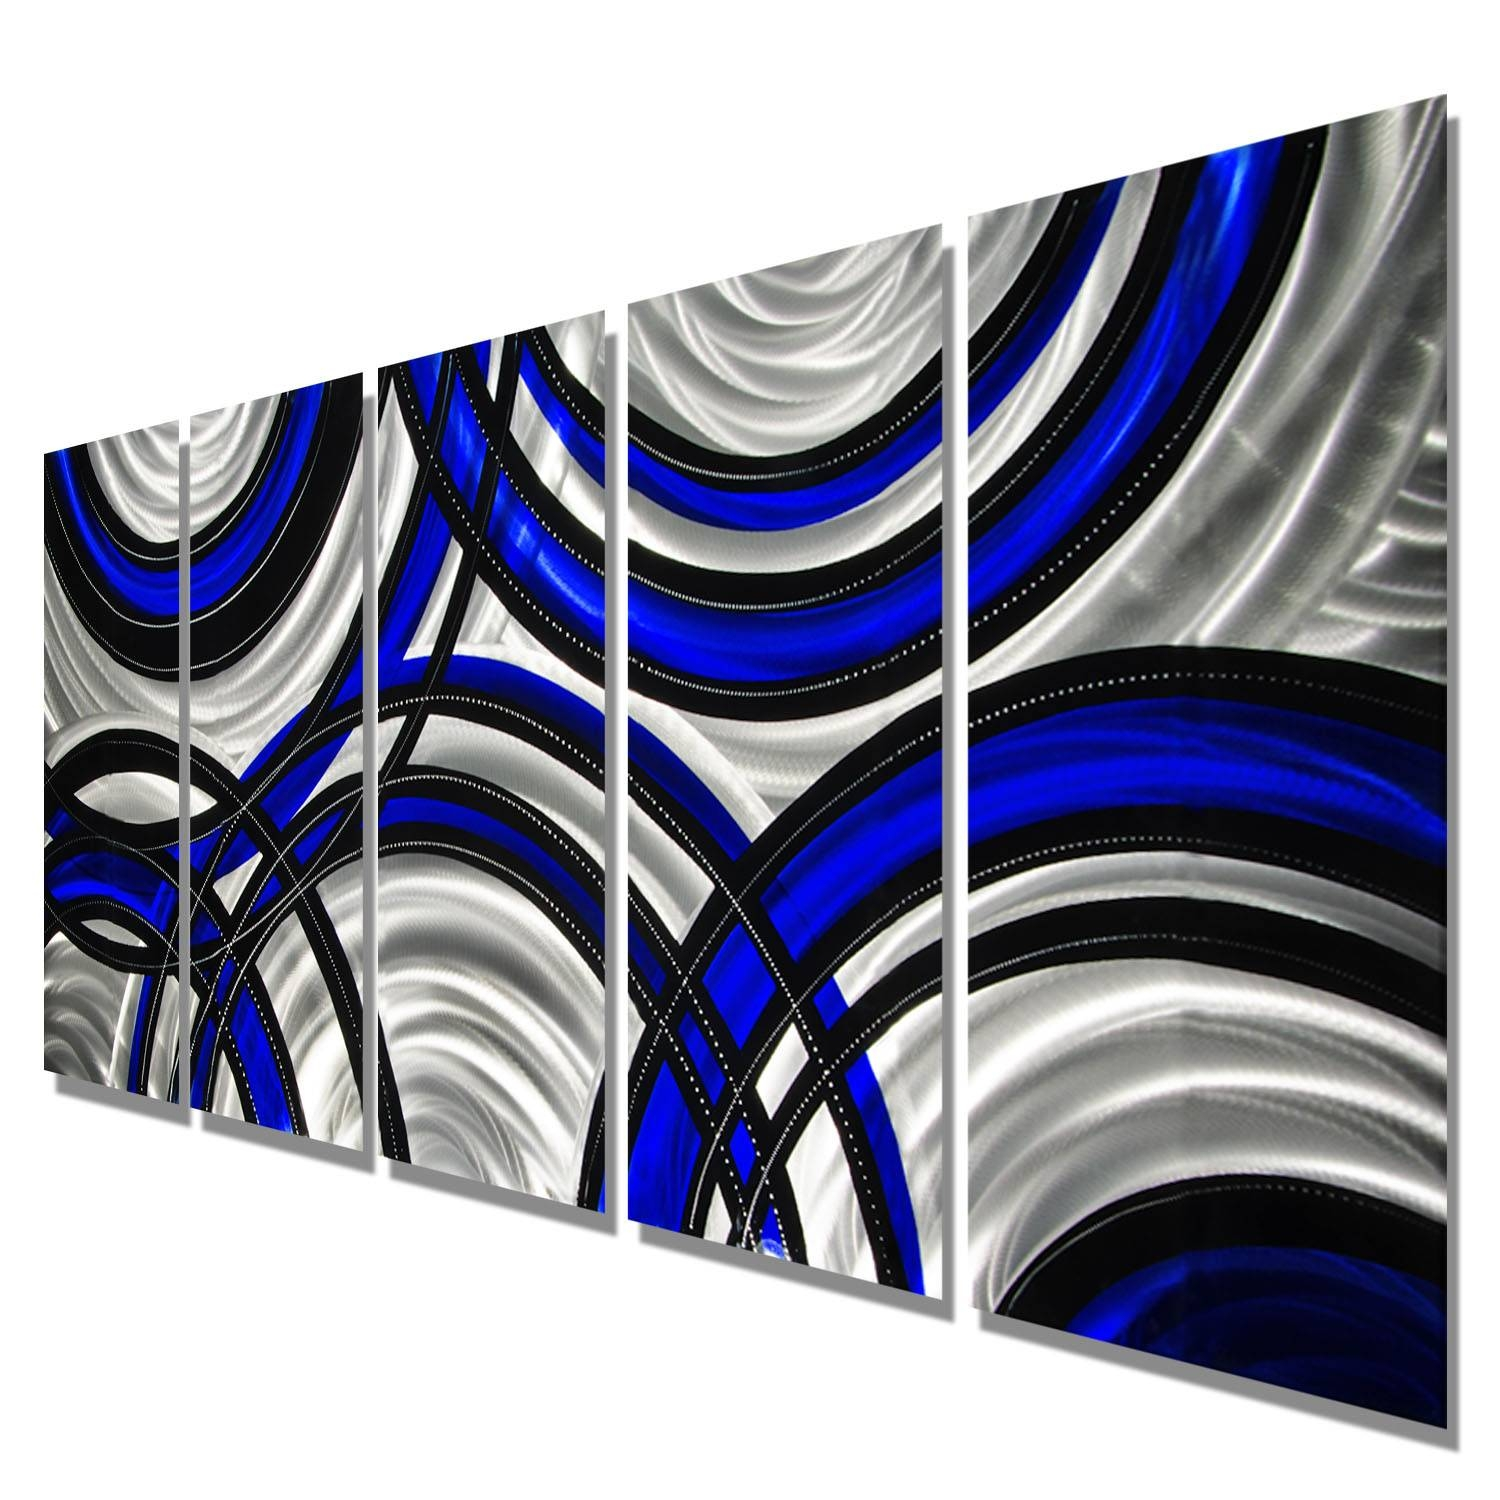 Blue Synergy – Blue, Black And Silver Metal Wall Art – 5 Panel Pertaining To Most Recent Blue And Silver Wall Art (View 10 of 20)